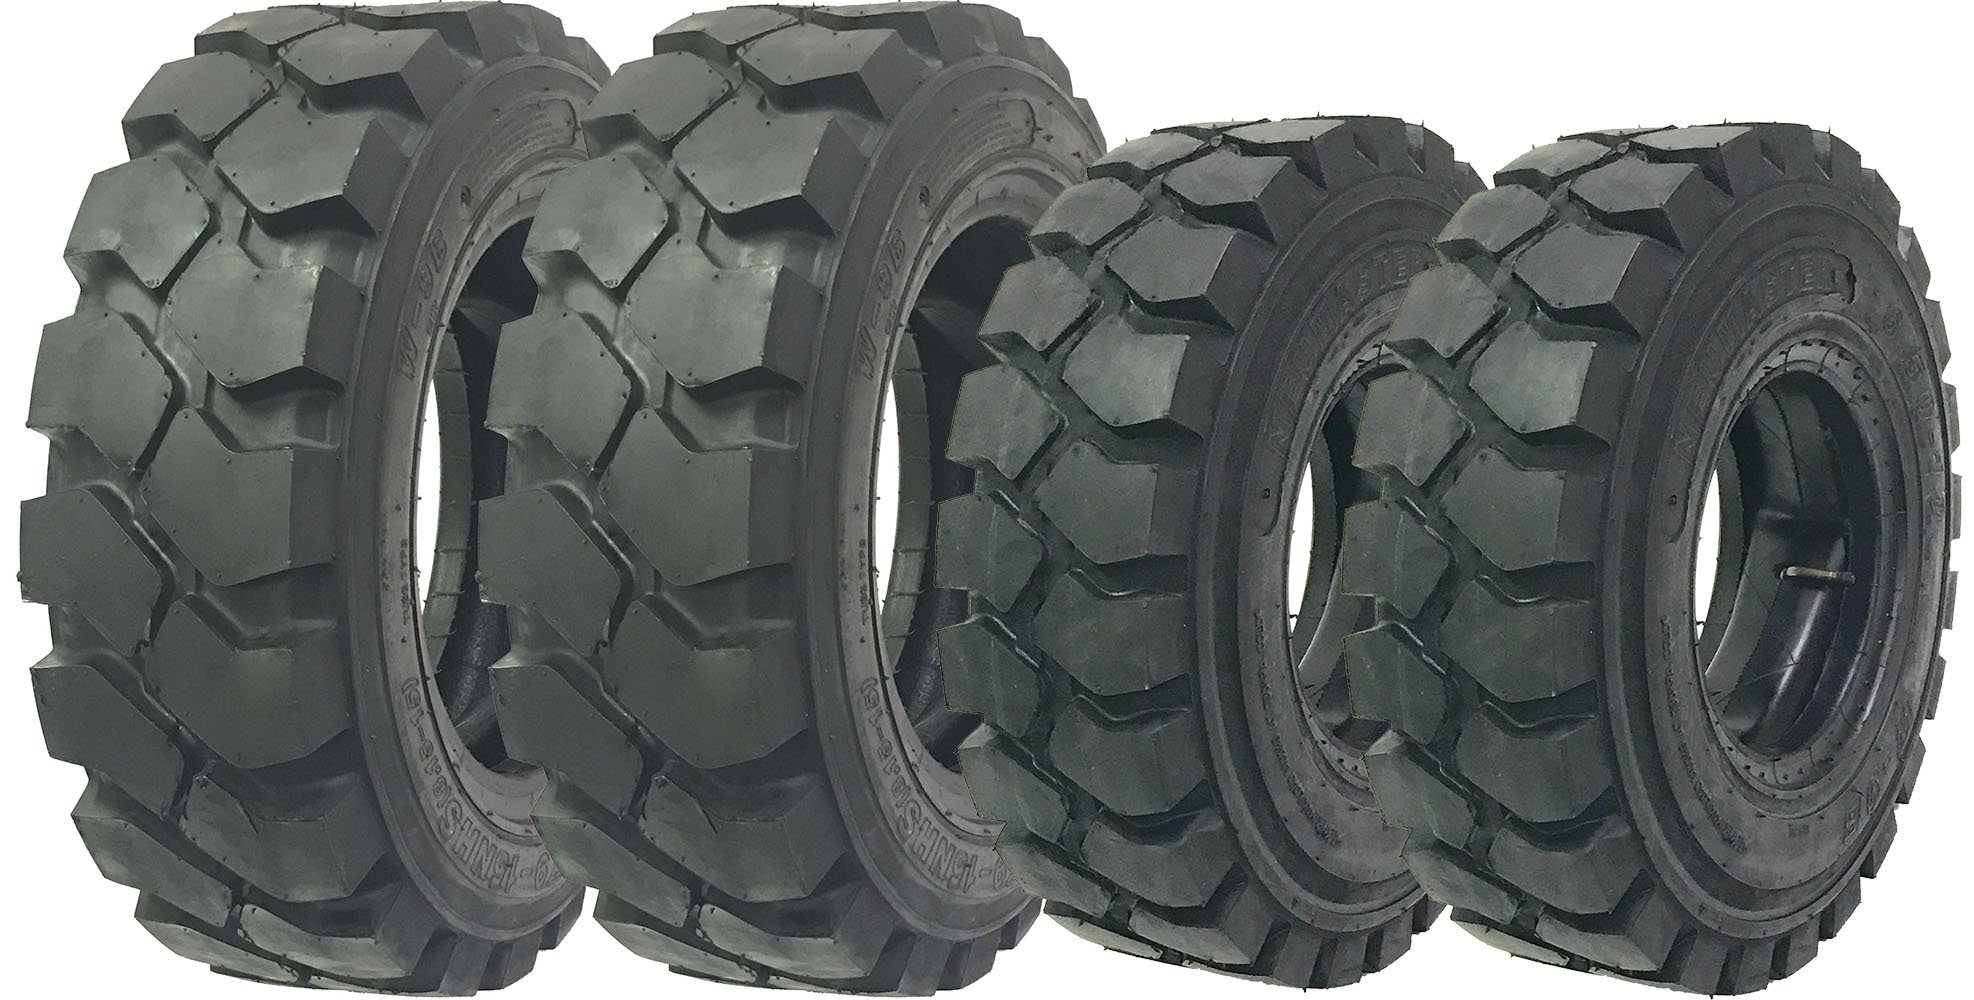 Set of 4 ZEEMAX 6.50-10 Steer & 28x9-15 (8.15-15) drive Forklift Tires w/Tube & Flap w/Rim Guard by NEUMASTER